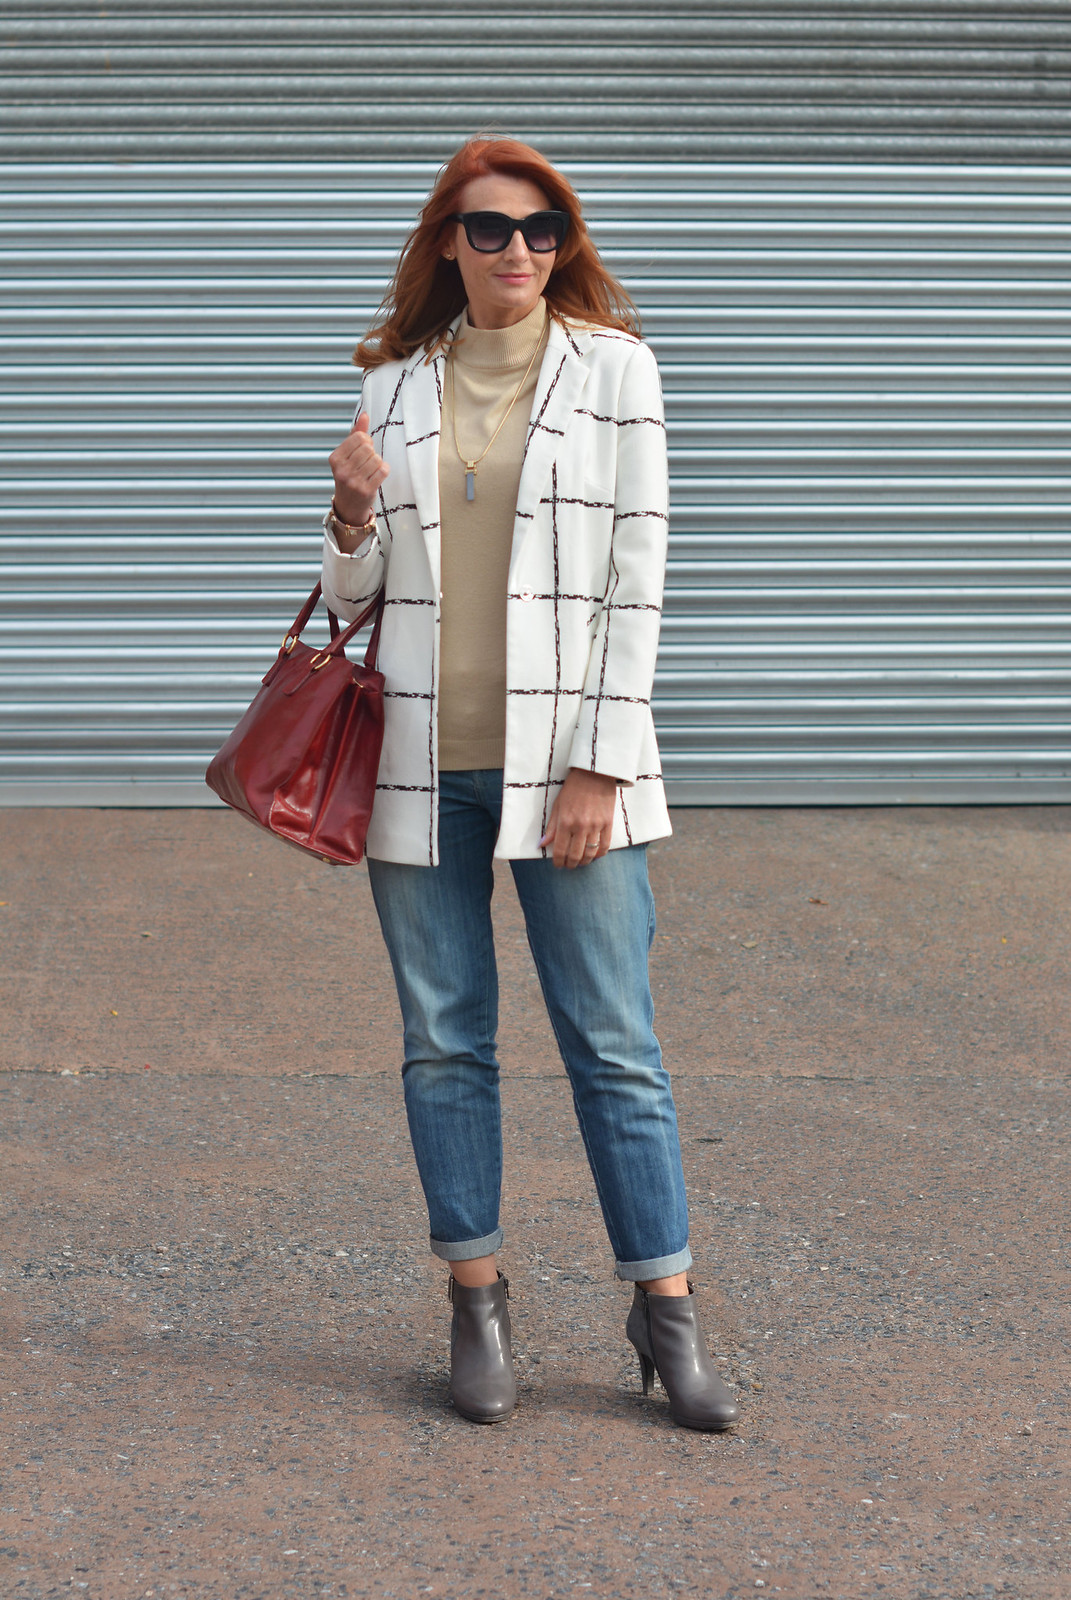 Black and white window-pane check coat, boyfriend jeans, grey booties